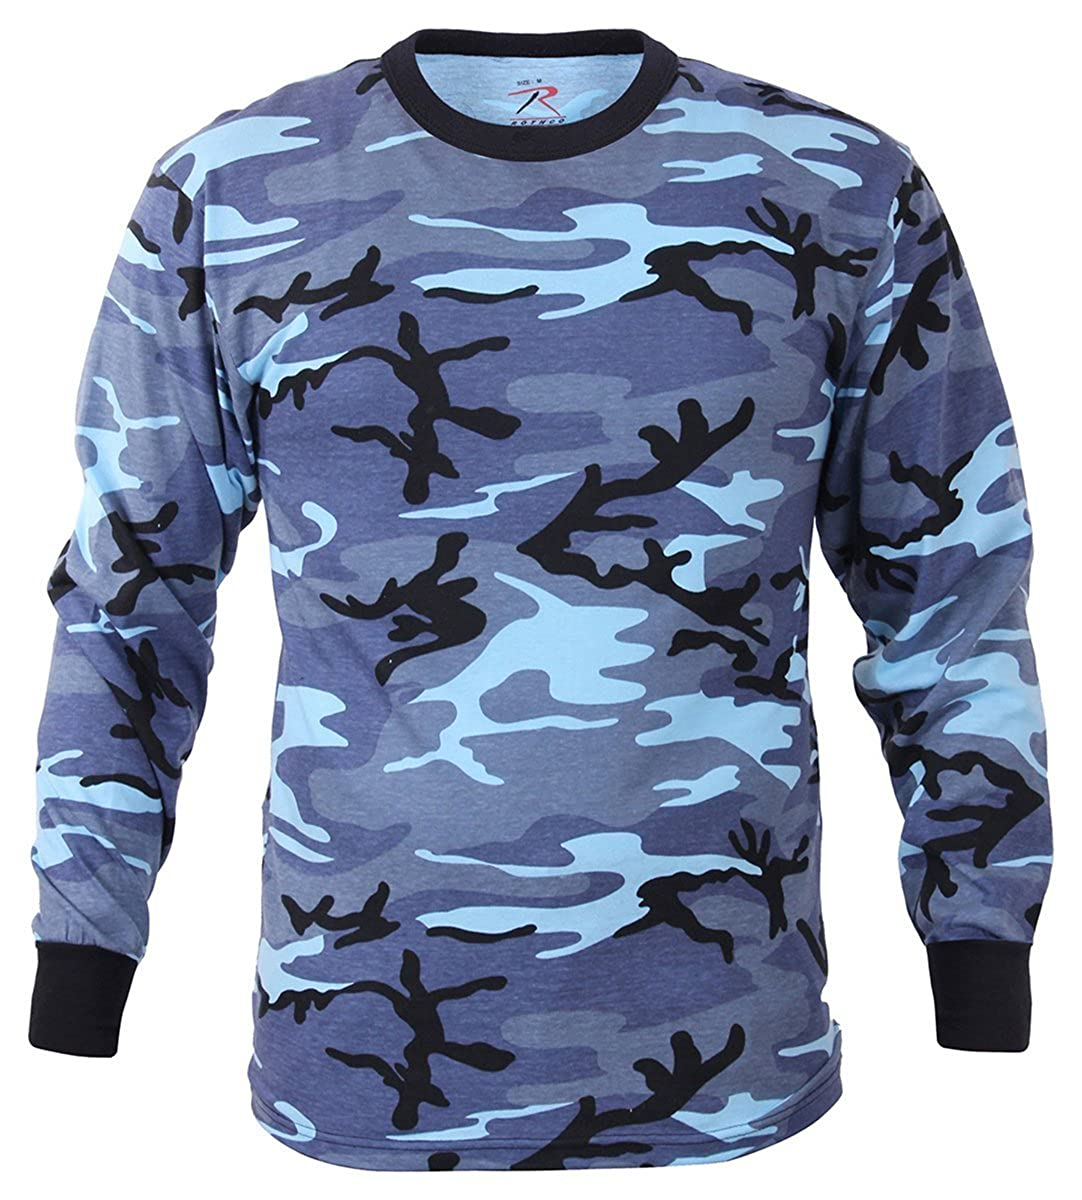 Rothco Long Sleeve Camo T-Shirt, Sky Blue Camo - Medium 67770MED